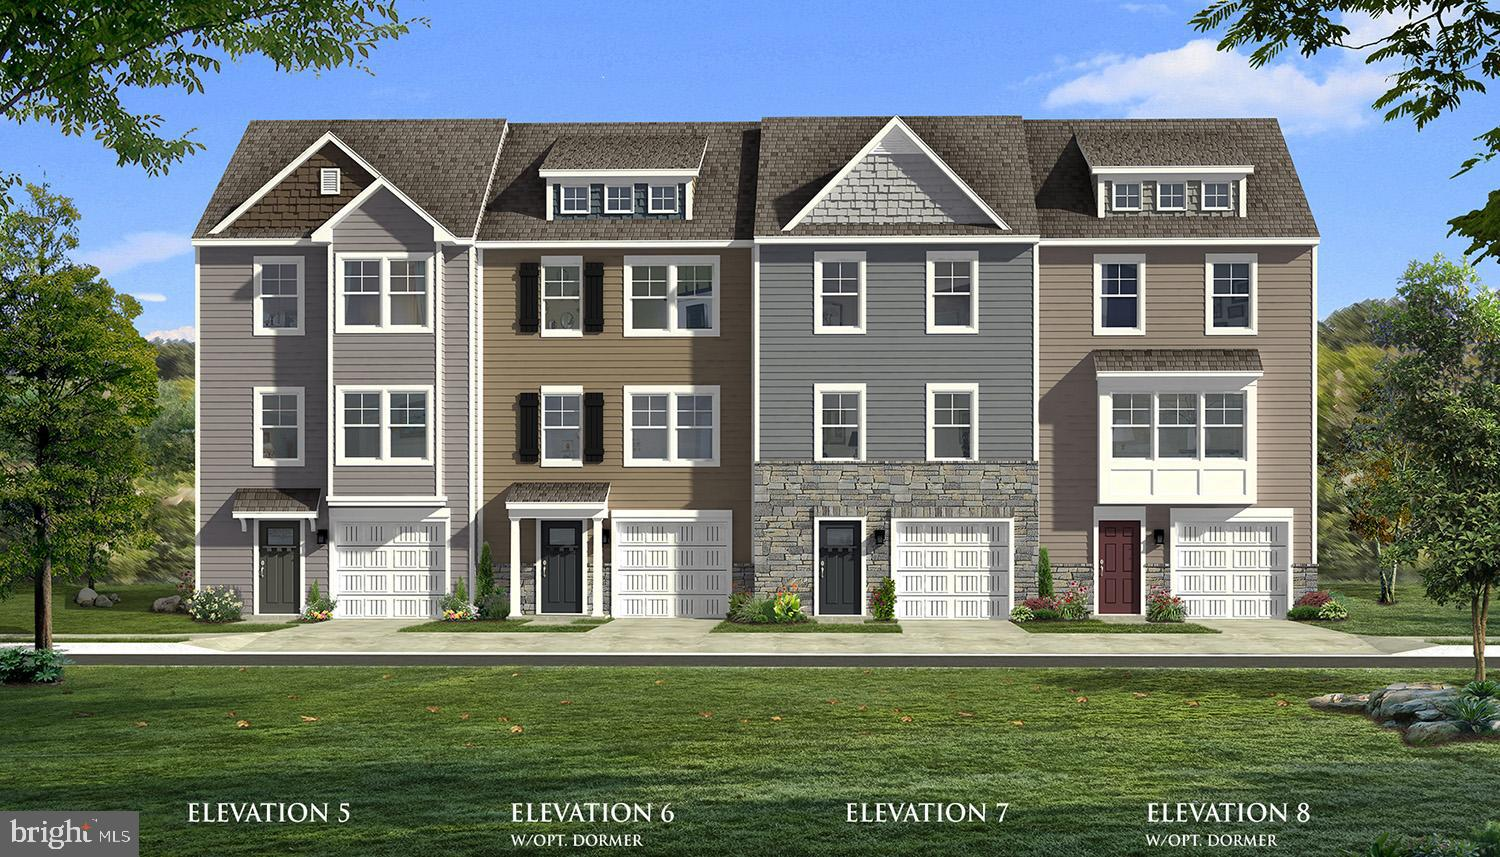 MOVE-IN SUMMER 2021! New Townhomes in Jefferson County with Views of the Blue Ridge Mountains! The Y